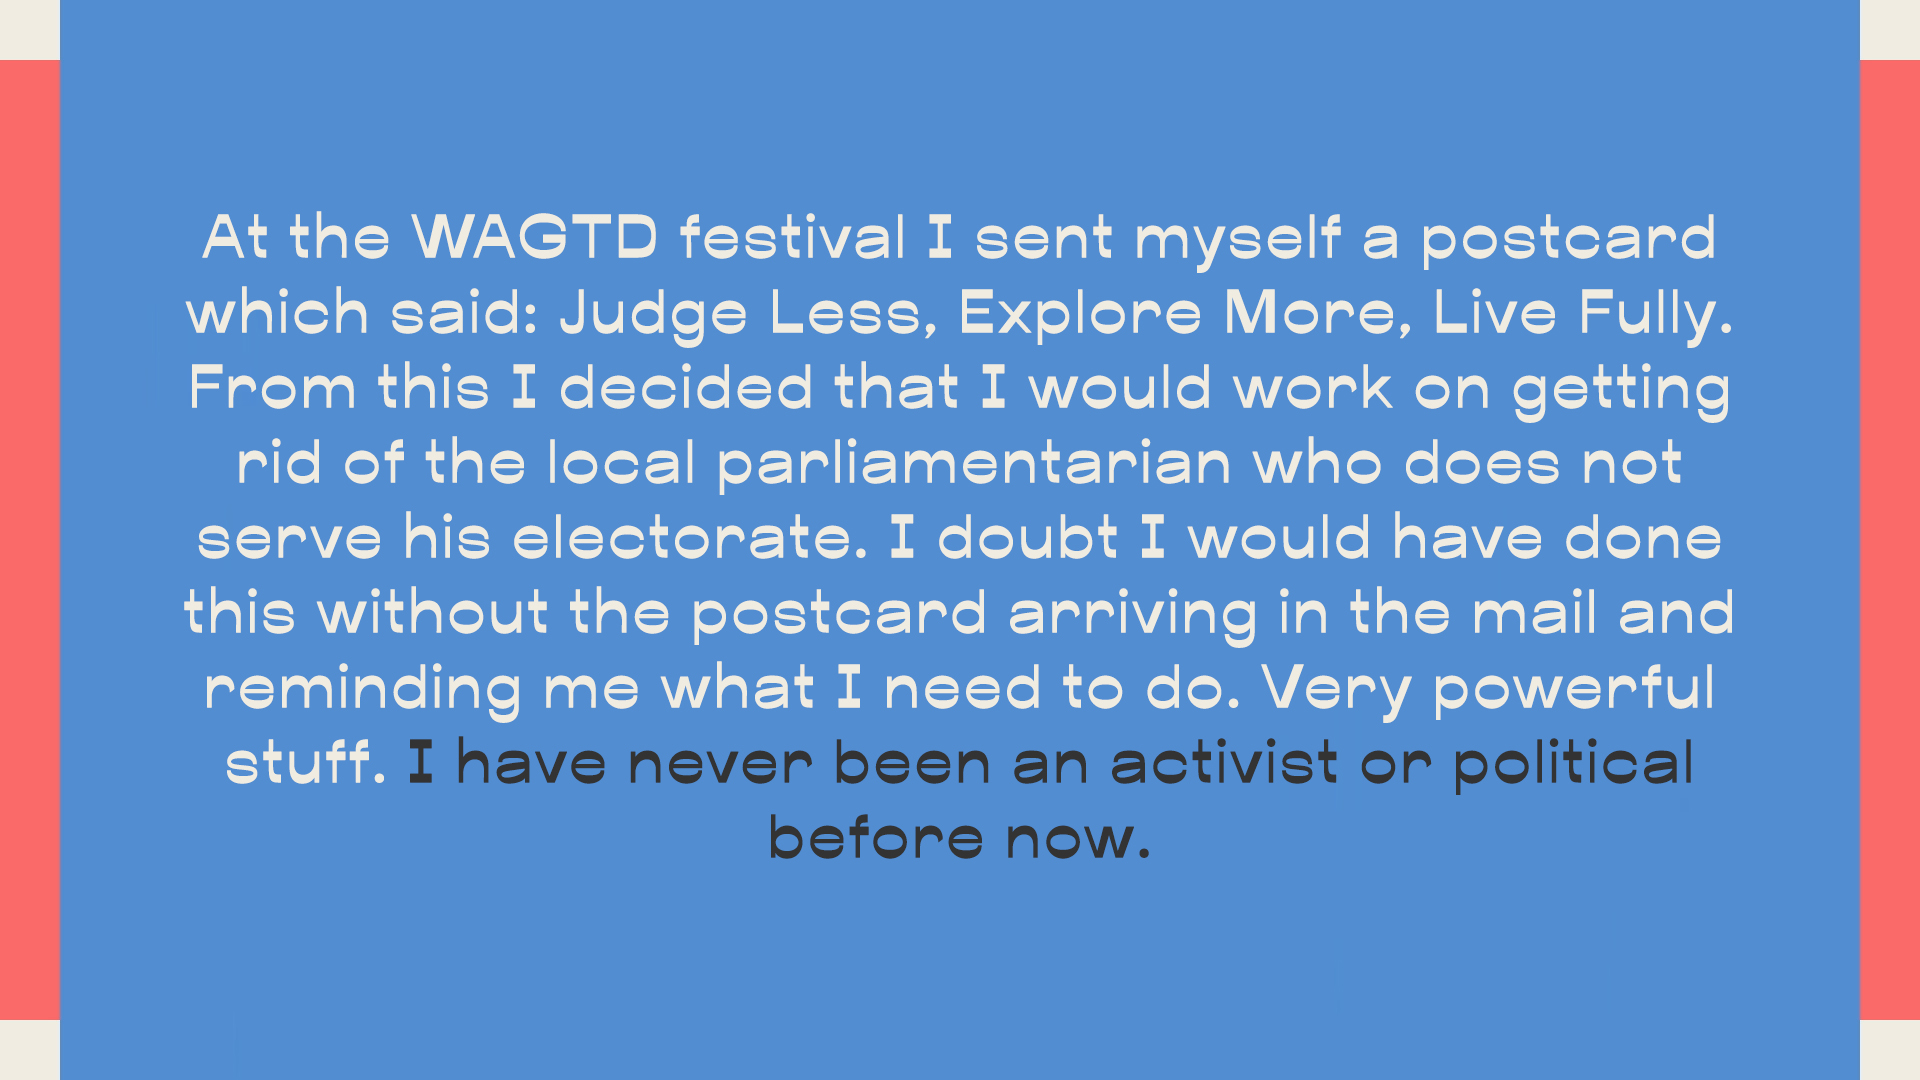 WAGTD-LIVE-MORE-SUBMISSION-6.jpg